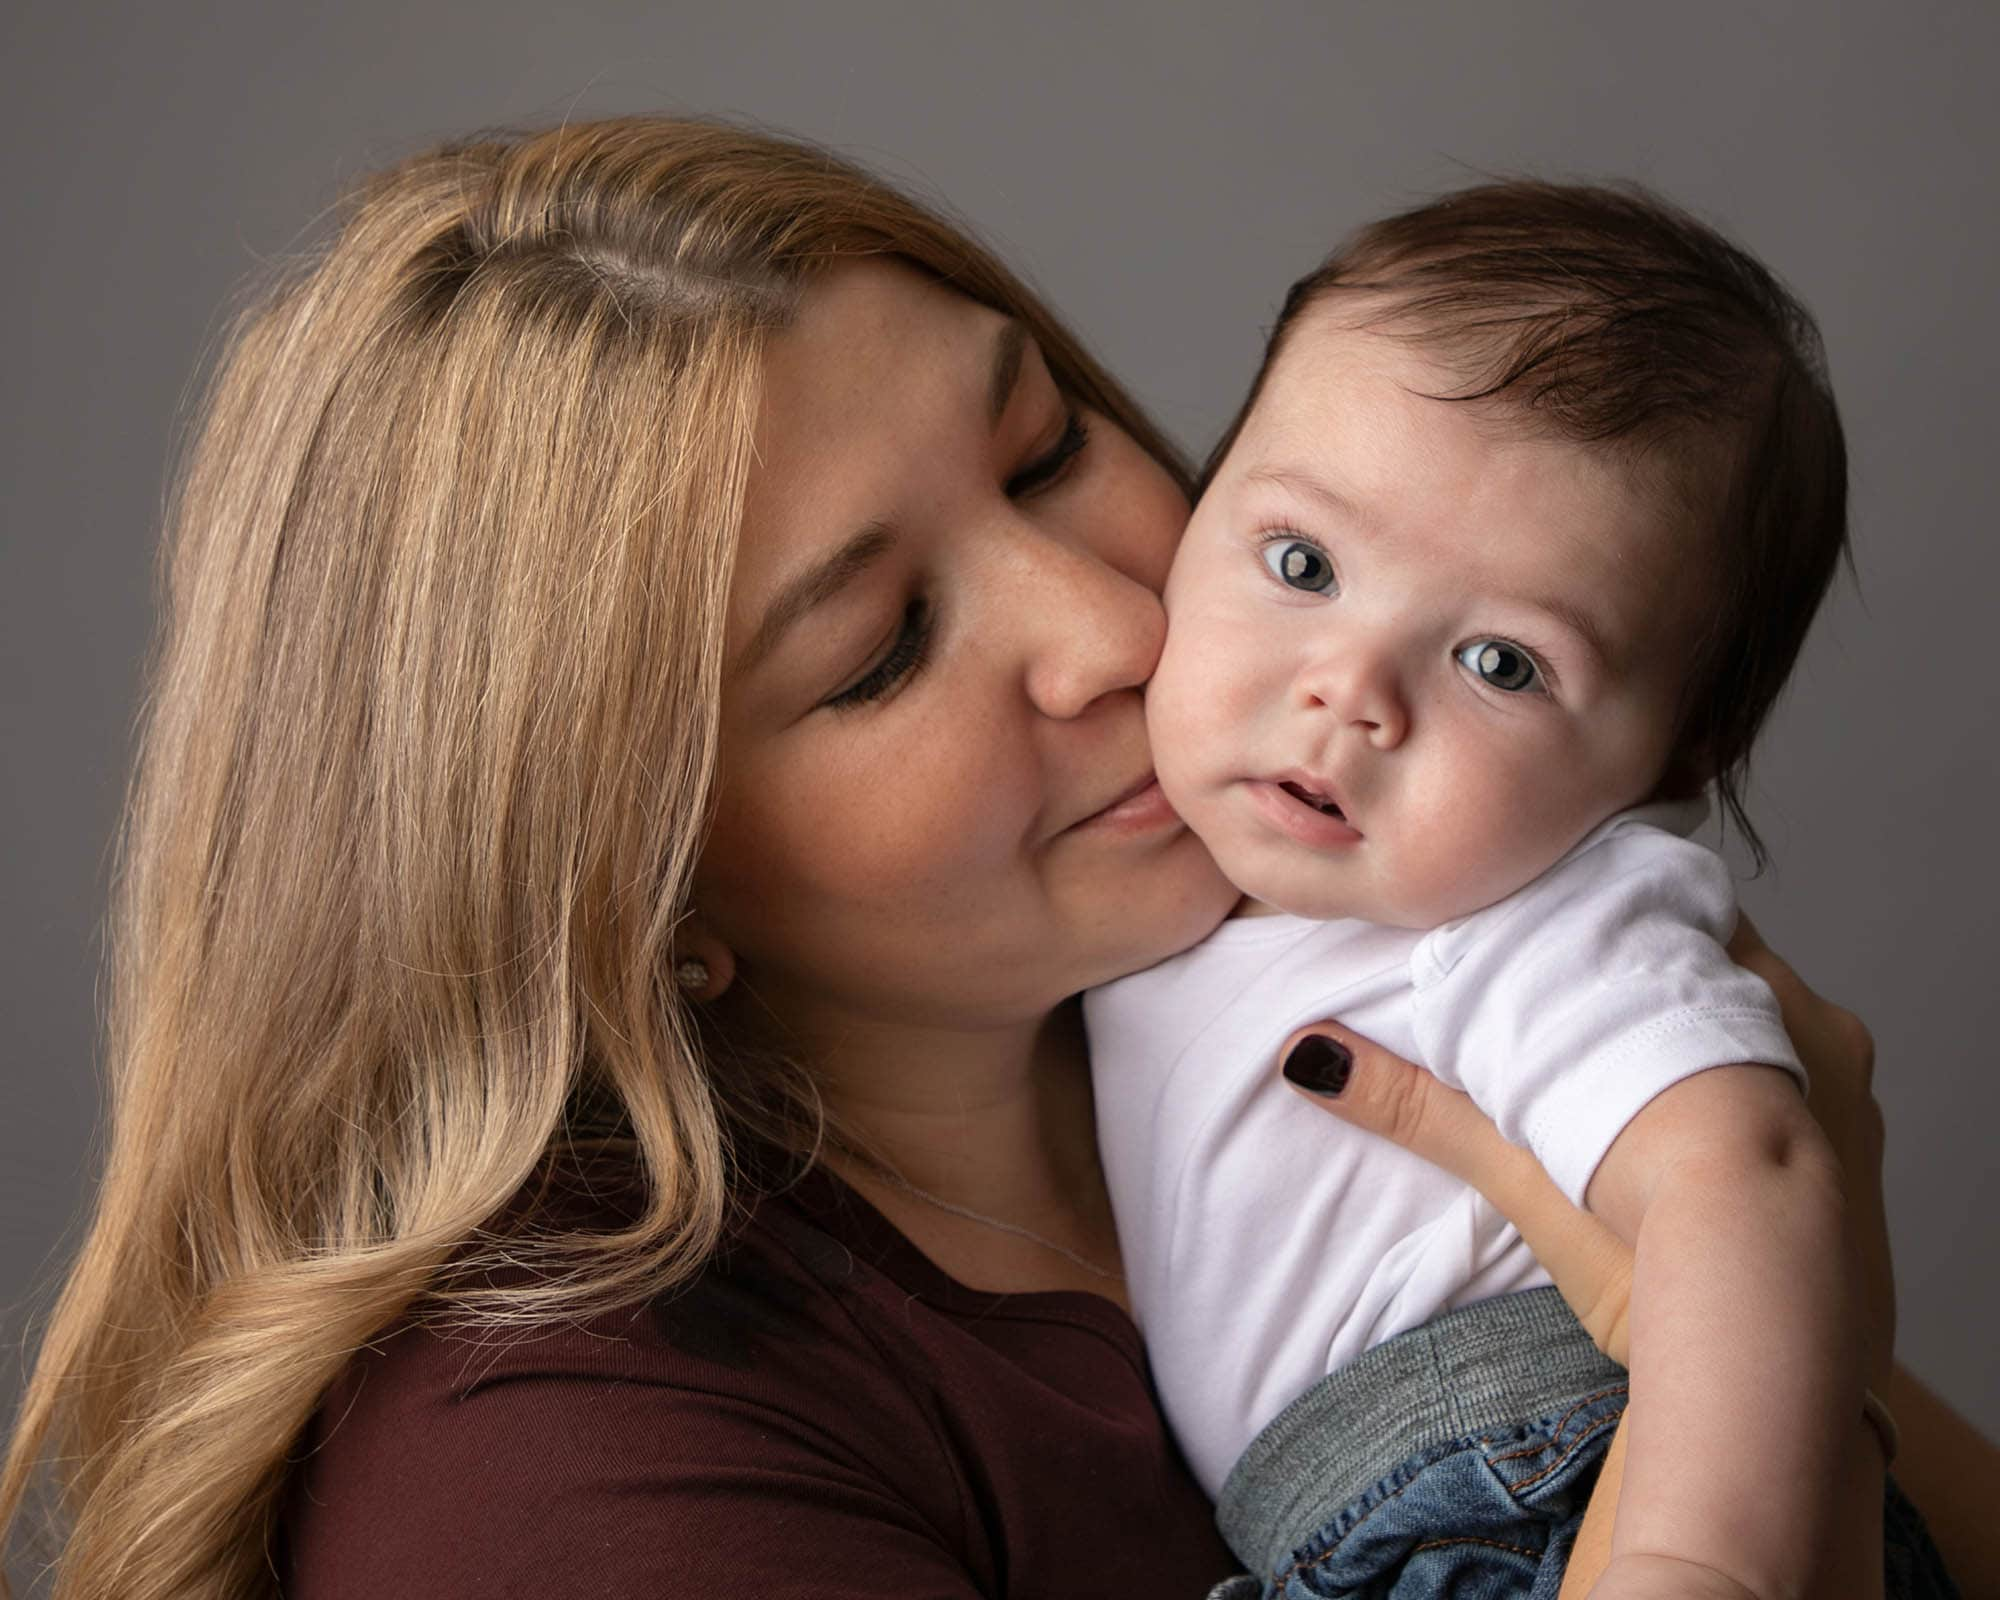 Older baby with mummy during photoshoot